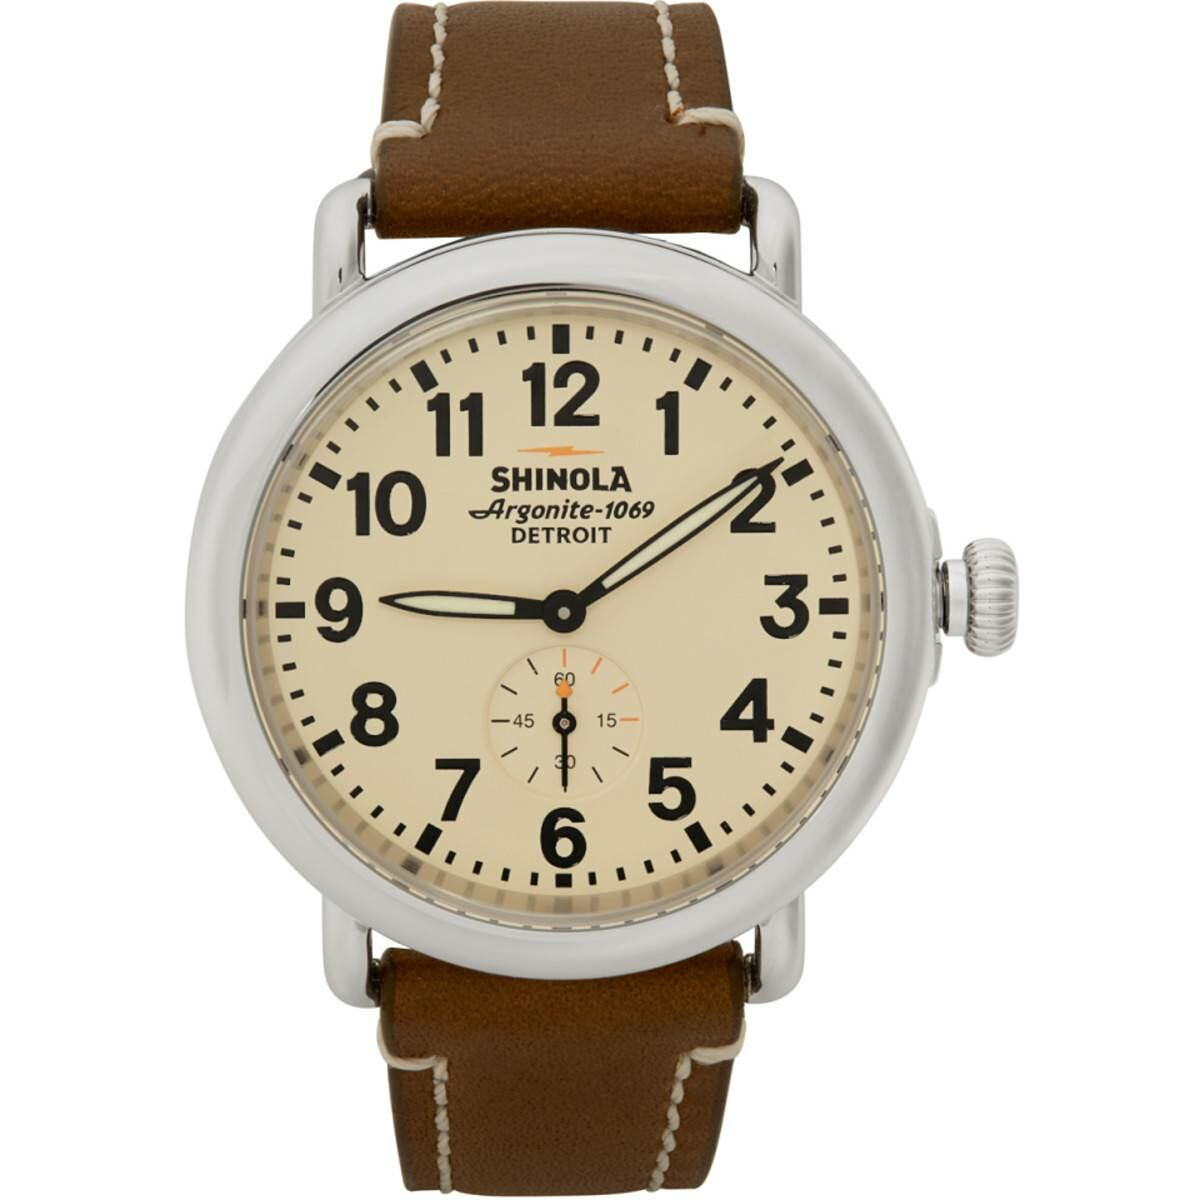 Shinola Silver and Off-White The Runwell 41mm Watch Ssense USA MEN Men ACCESSORIES Mens WATCHES